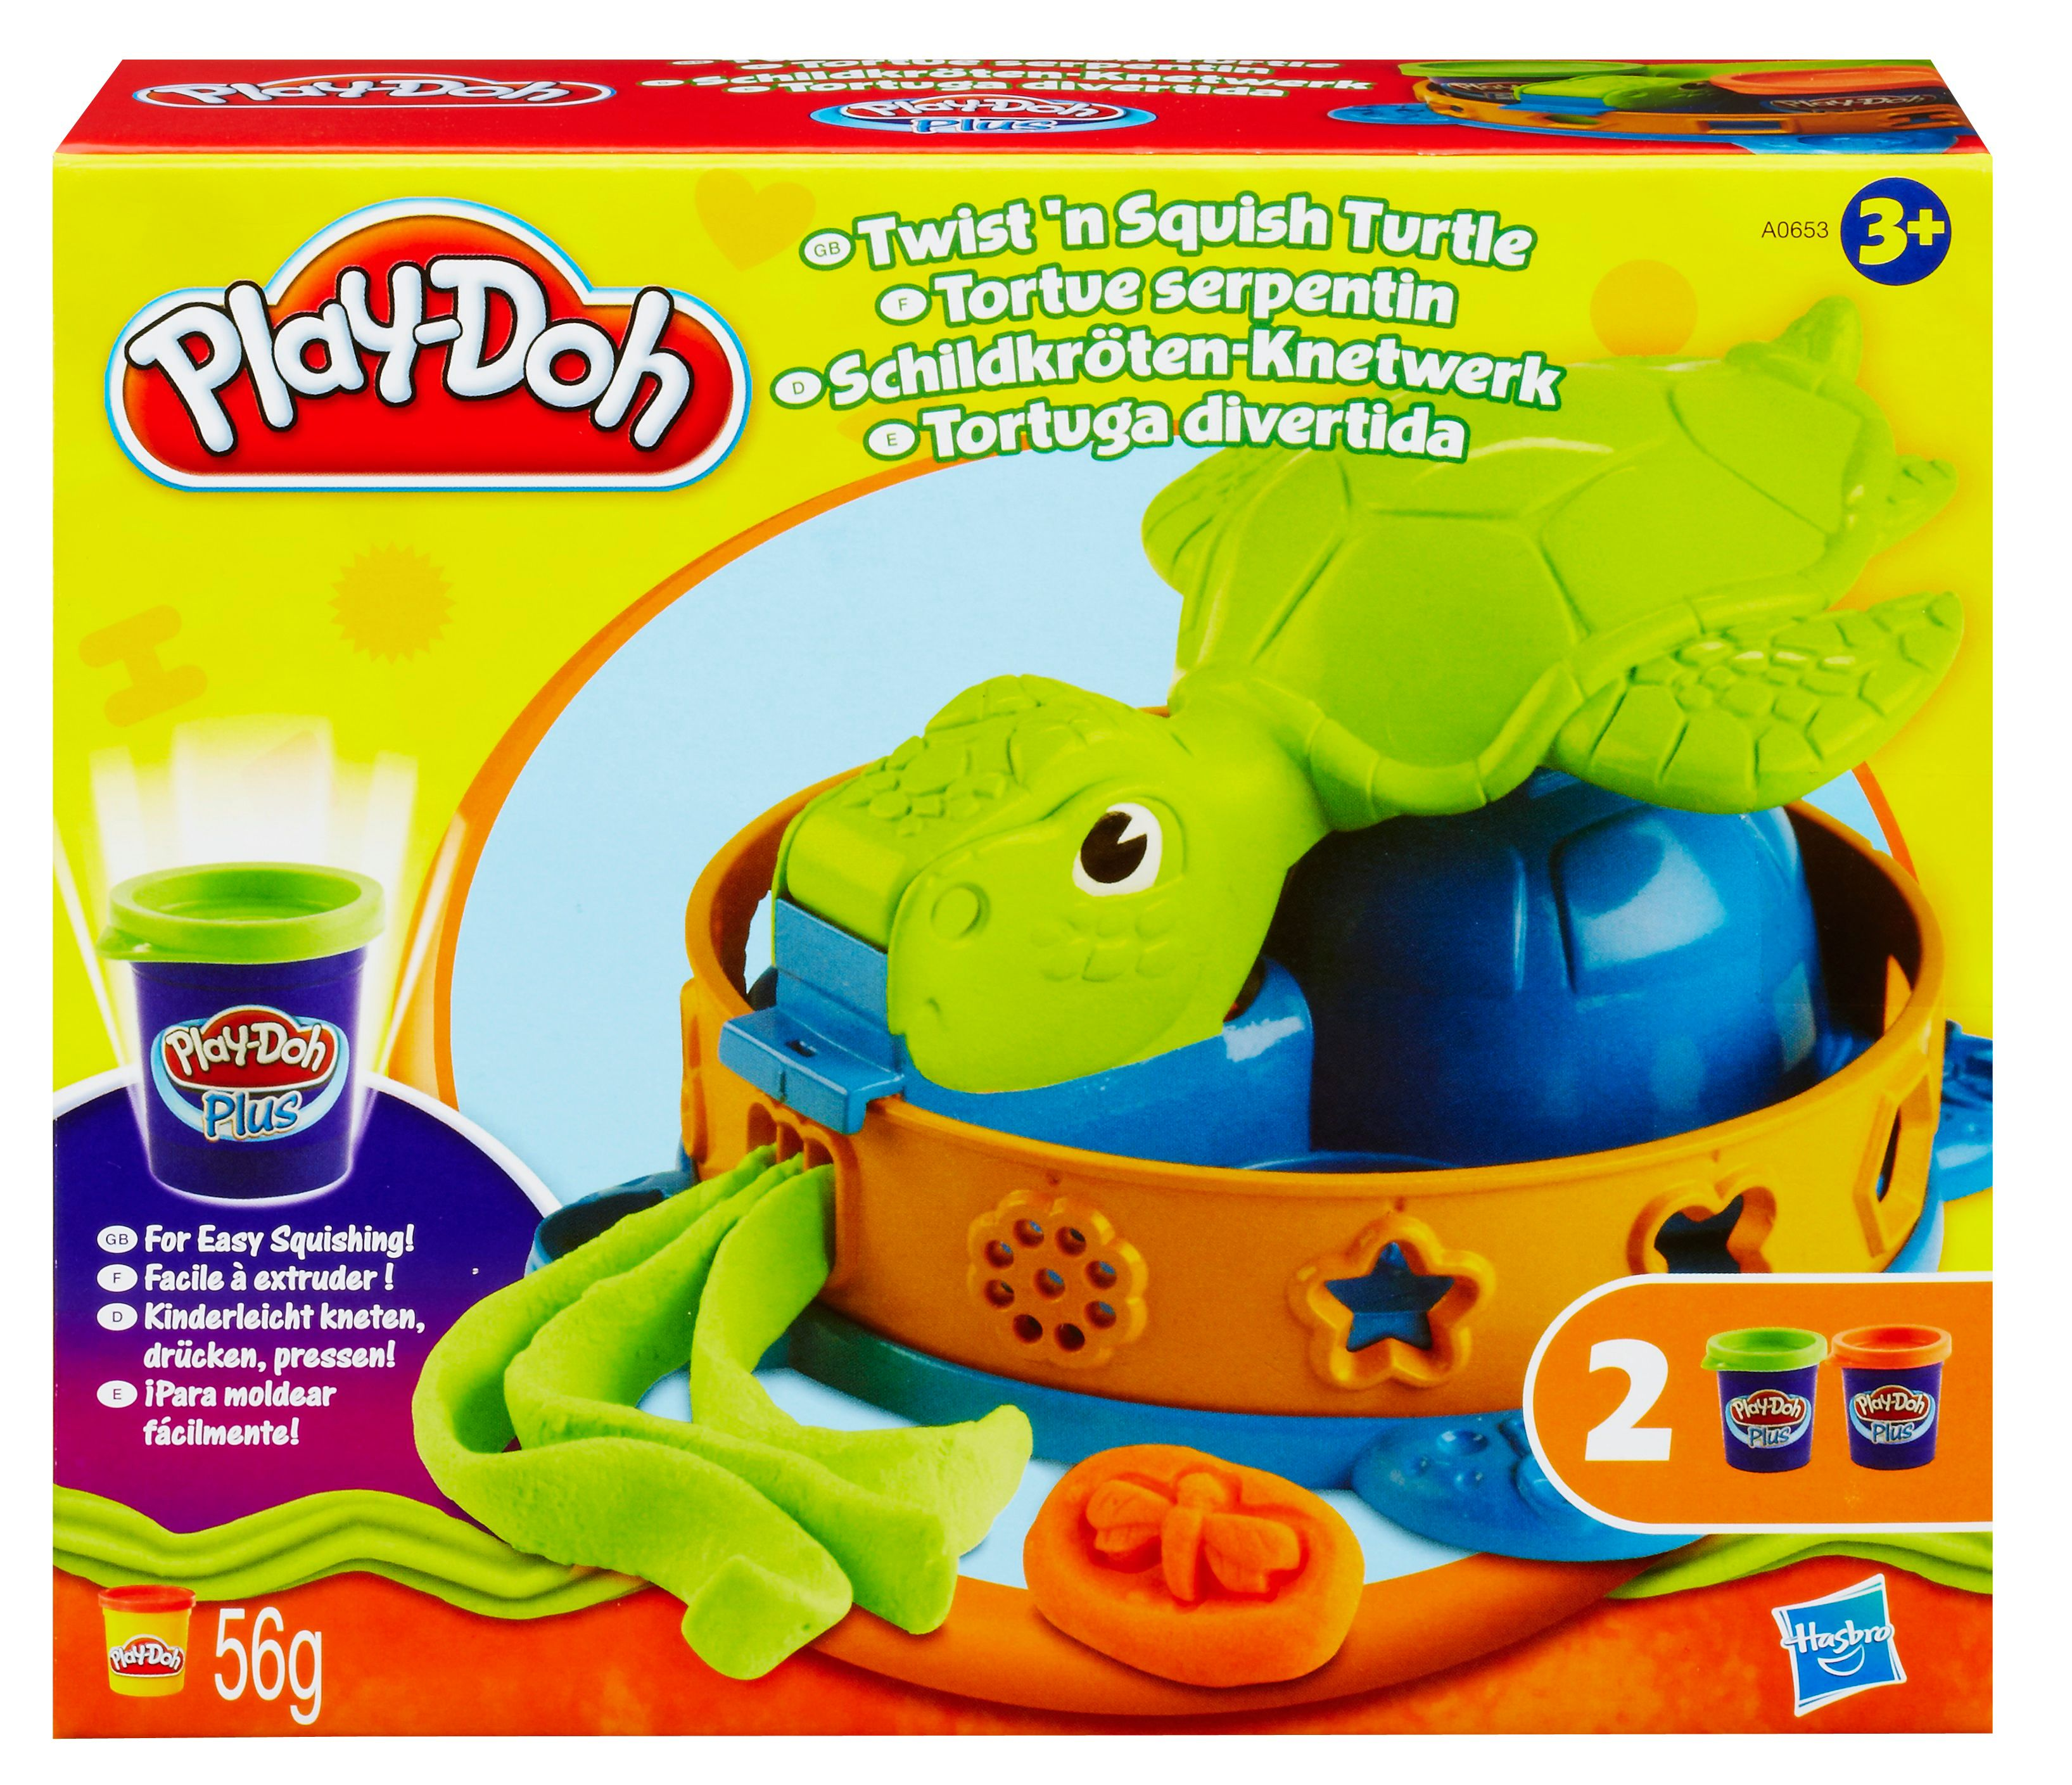 Play Doh Twist N Squish Turtle